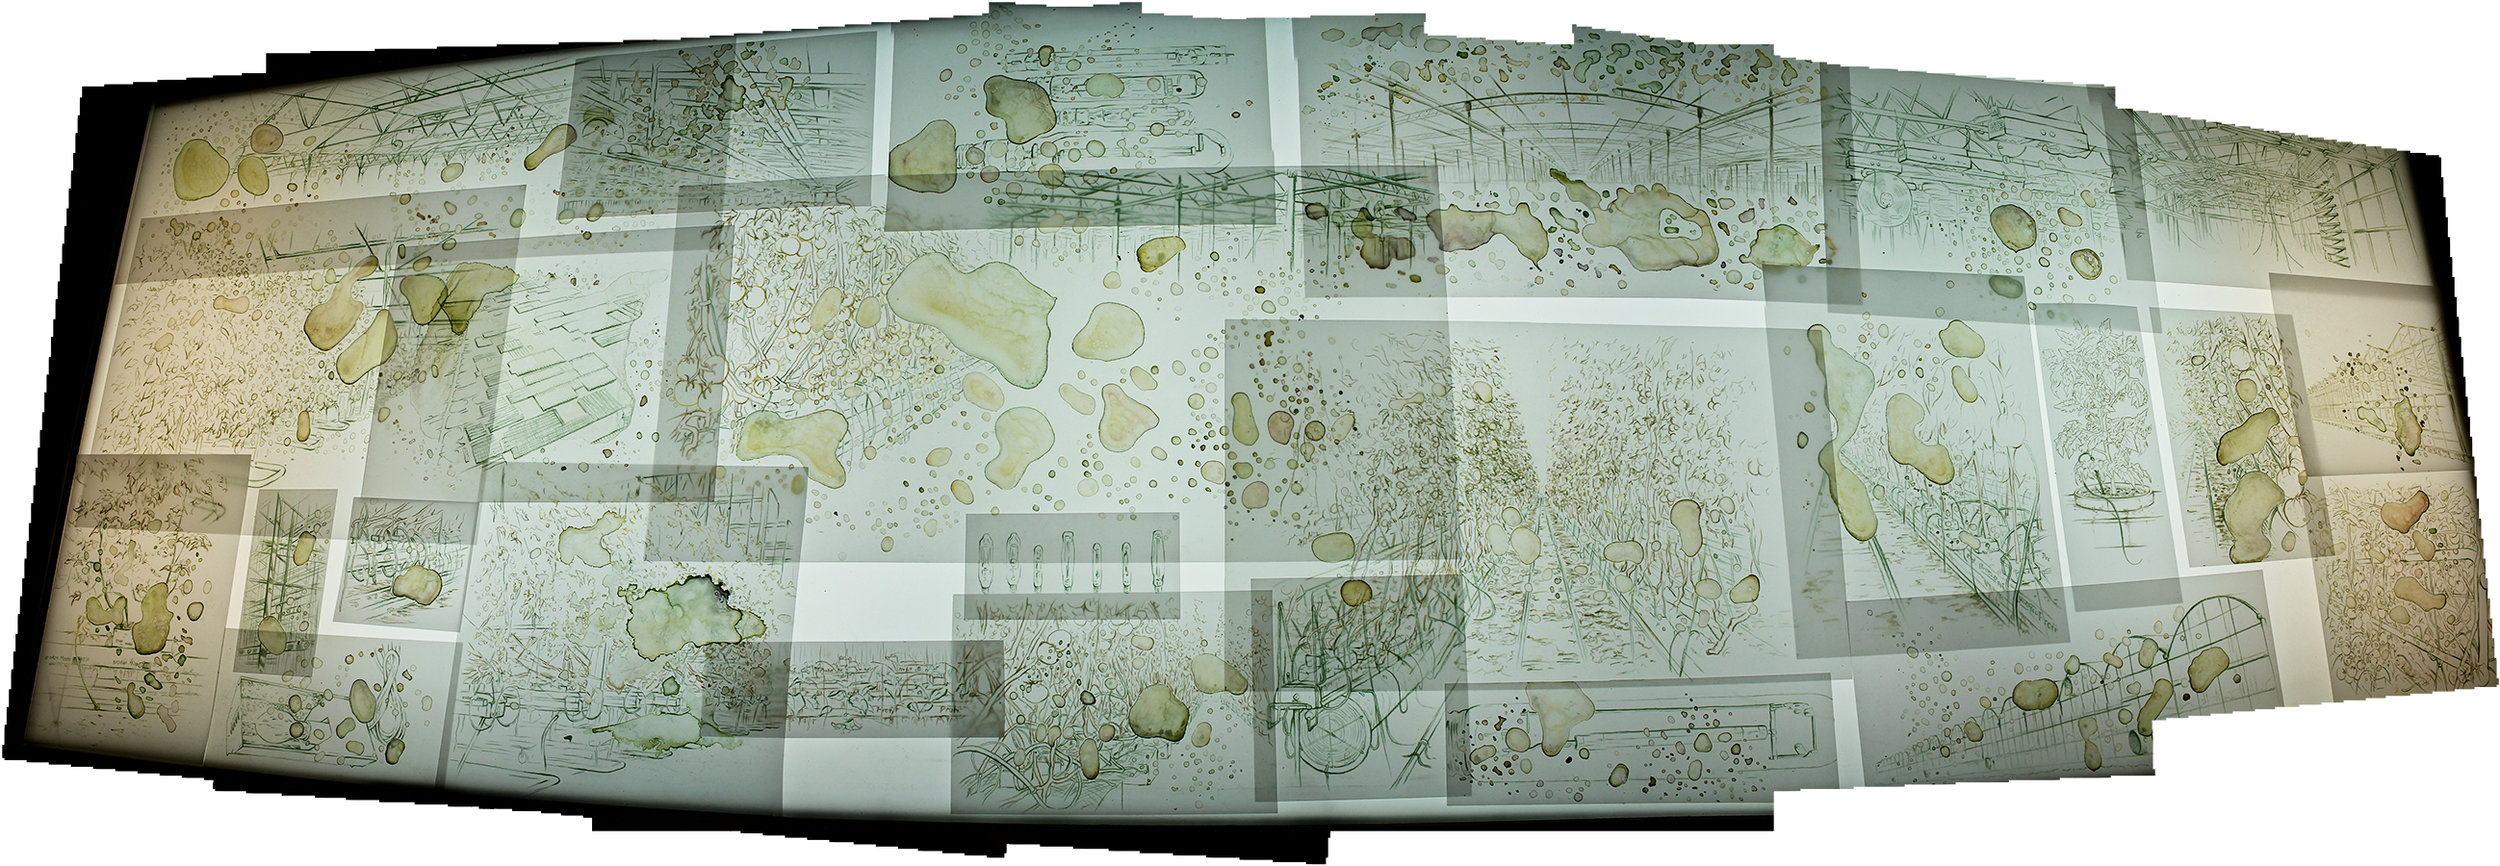 Amalgamated image of drawings from light table